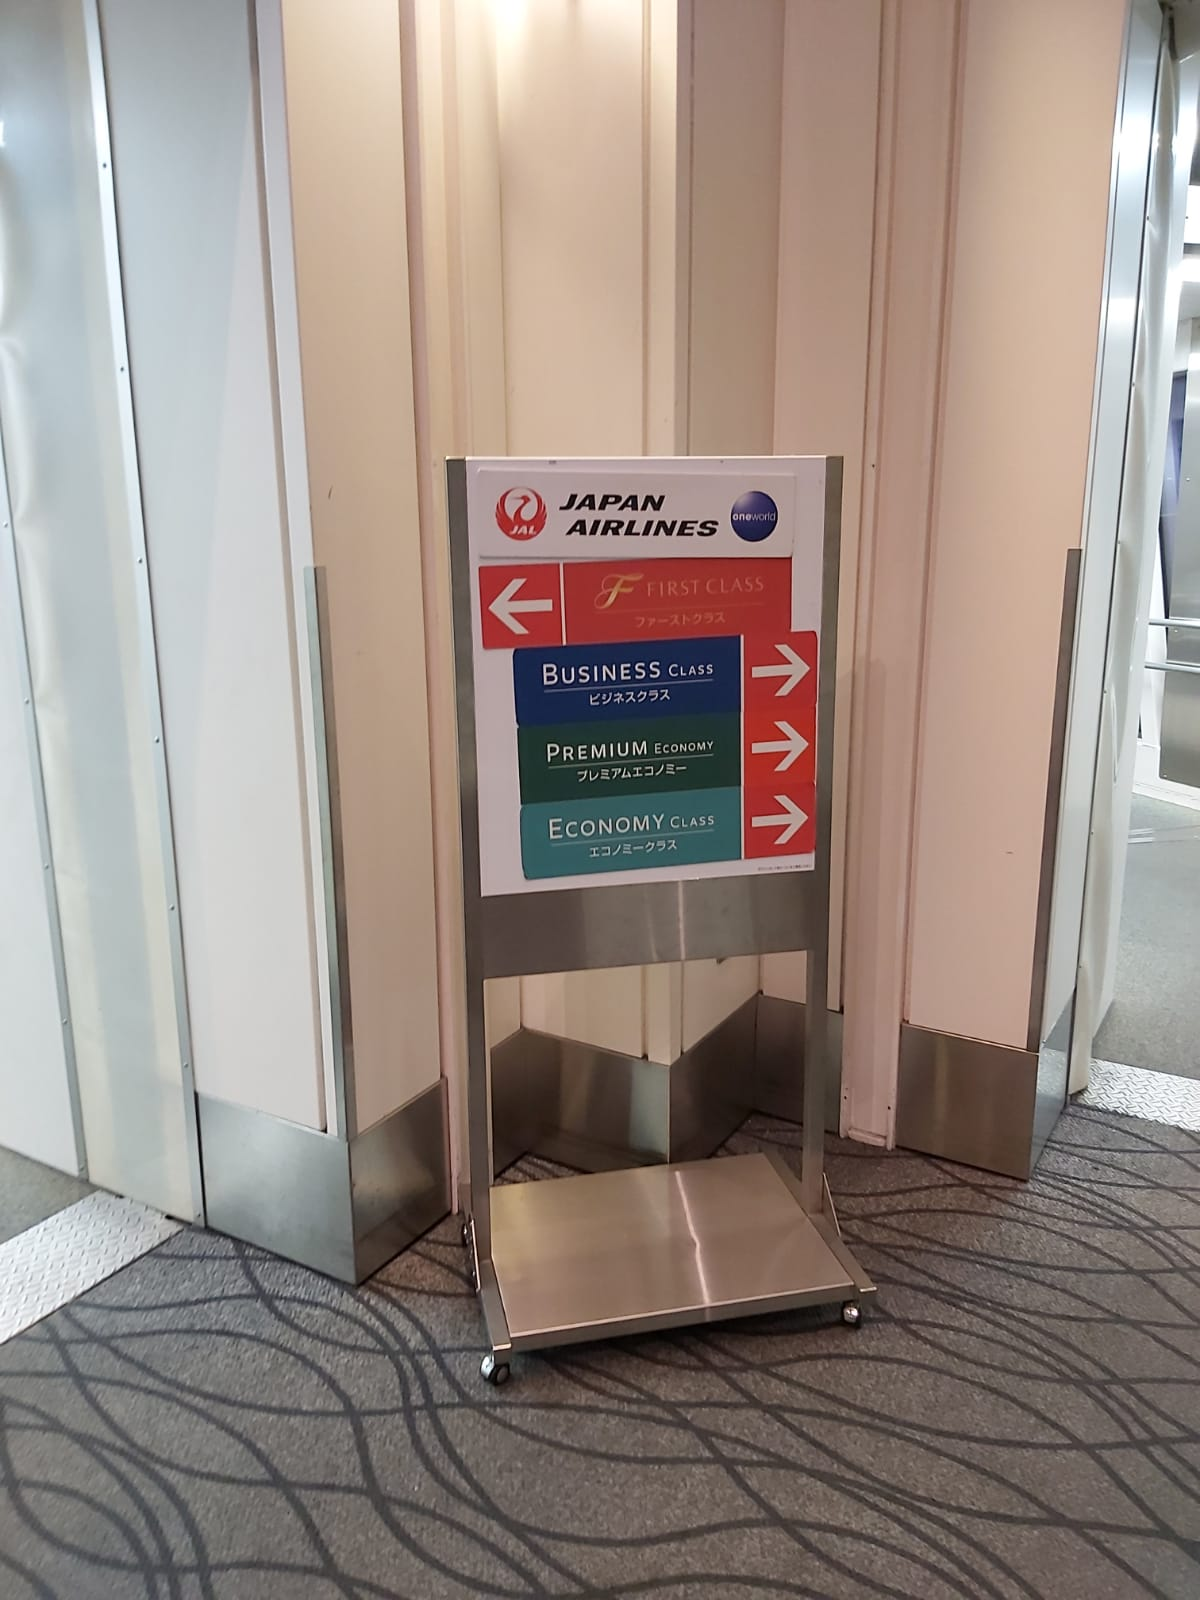 Japan Airlines First Class jetway sign